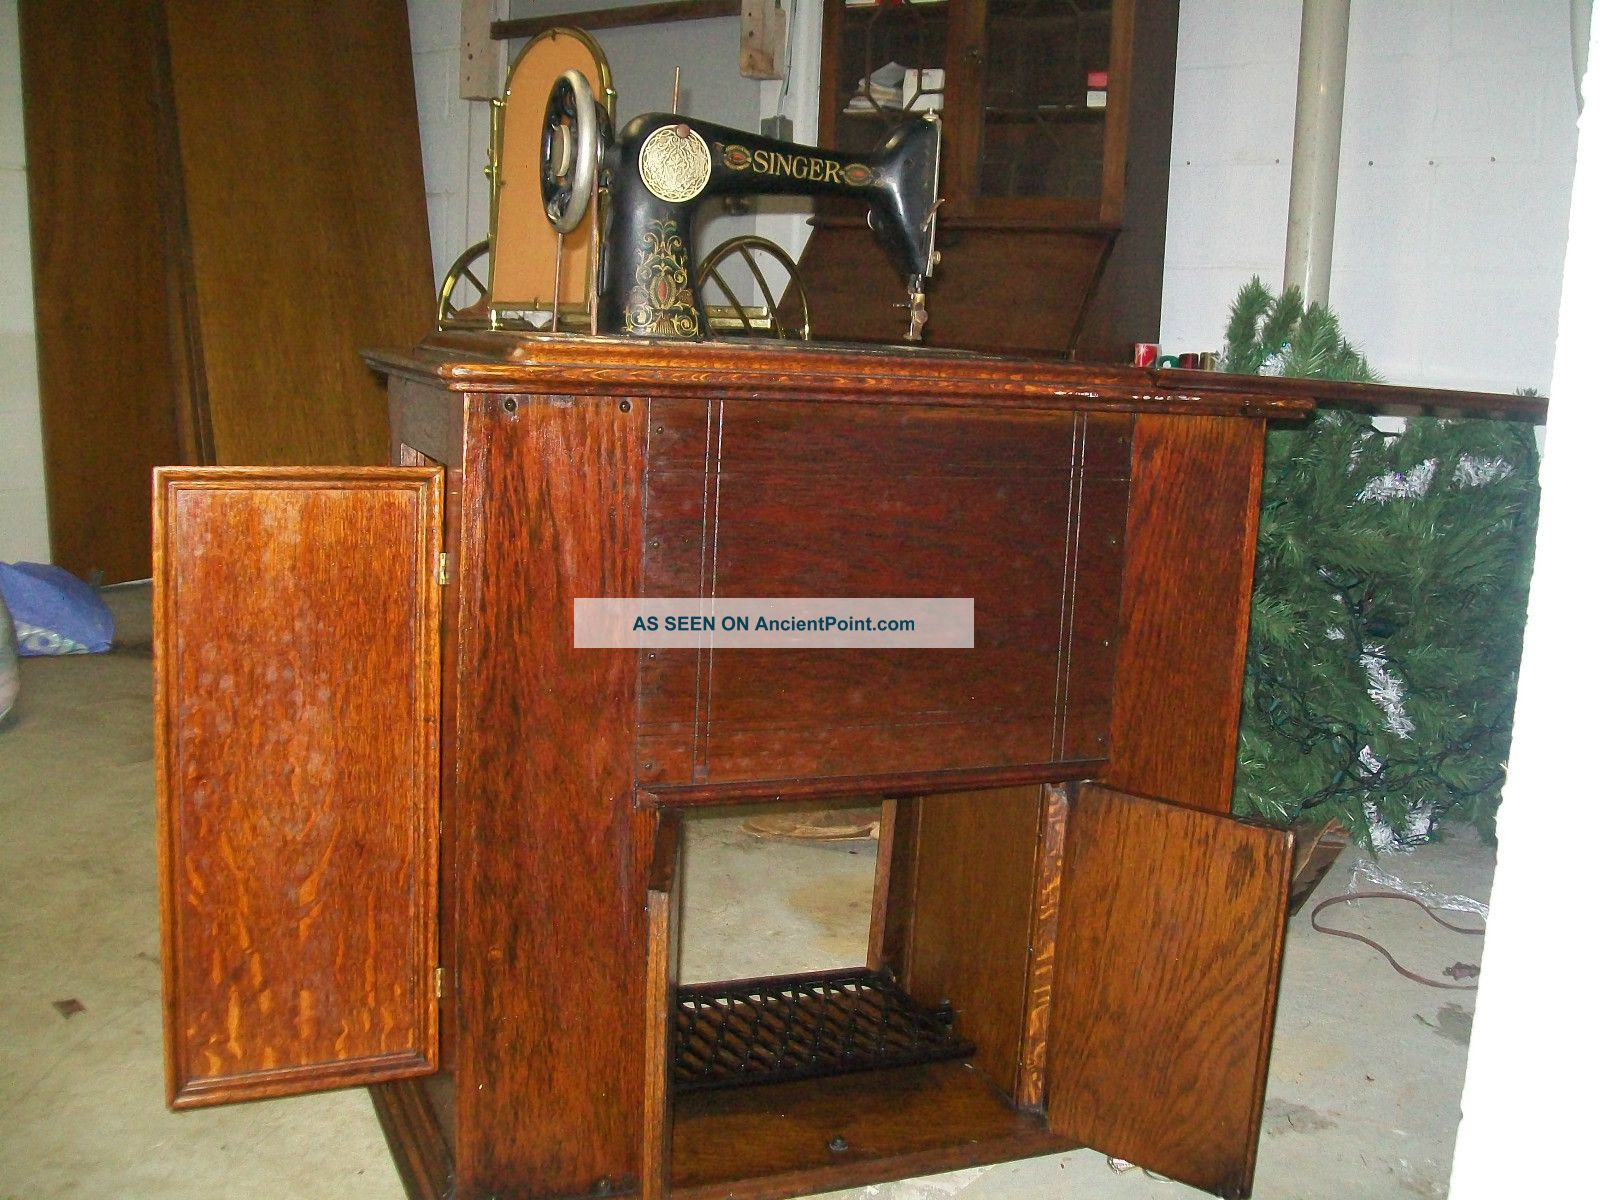 1920 Singer Sewing Machine And Parlor Cabinet, Model 66